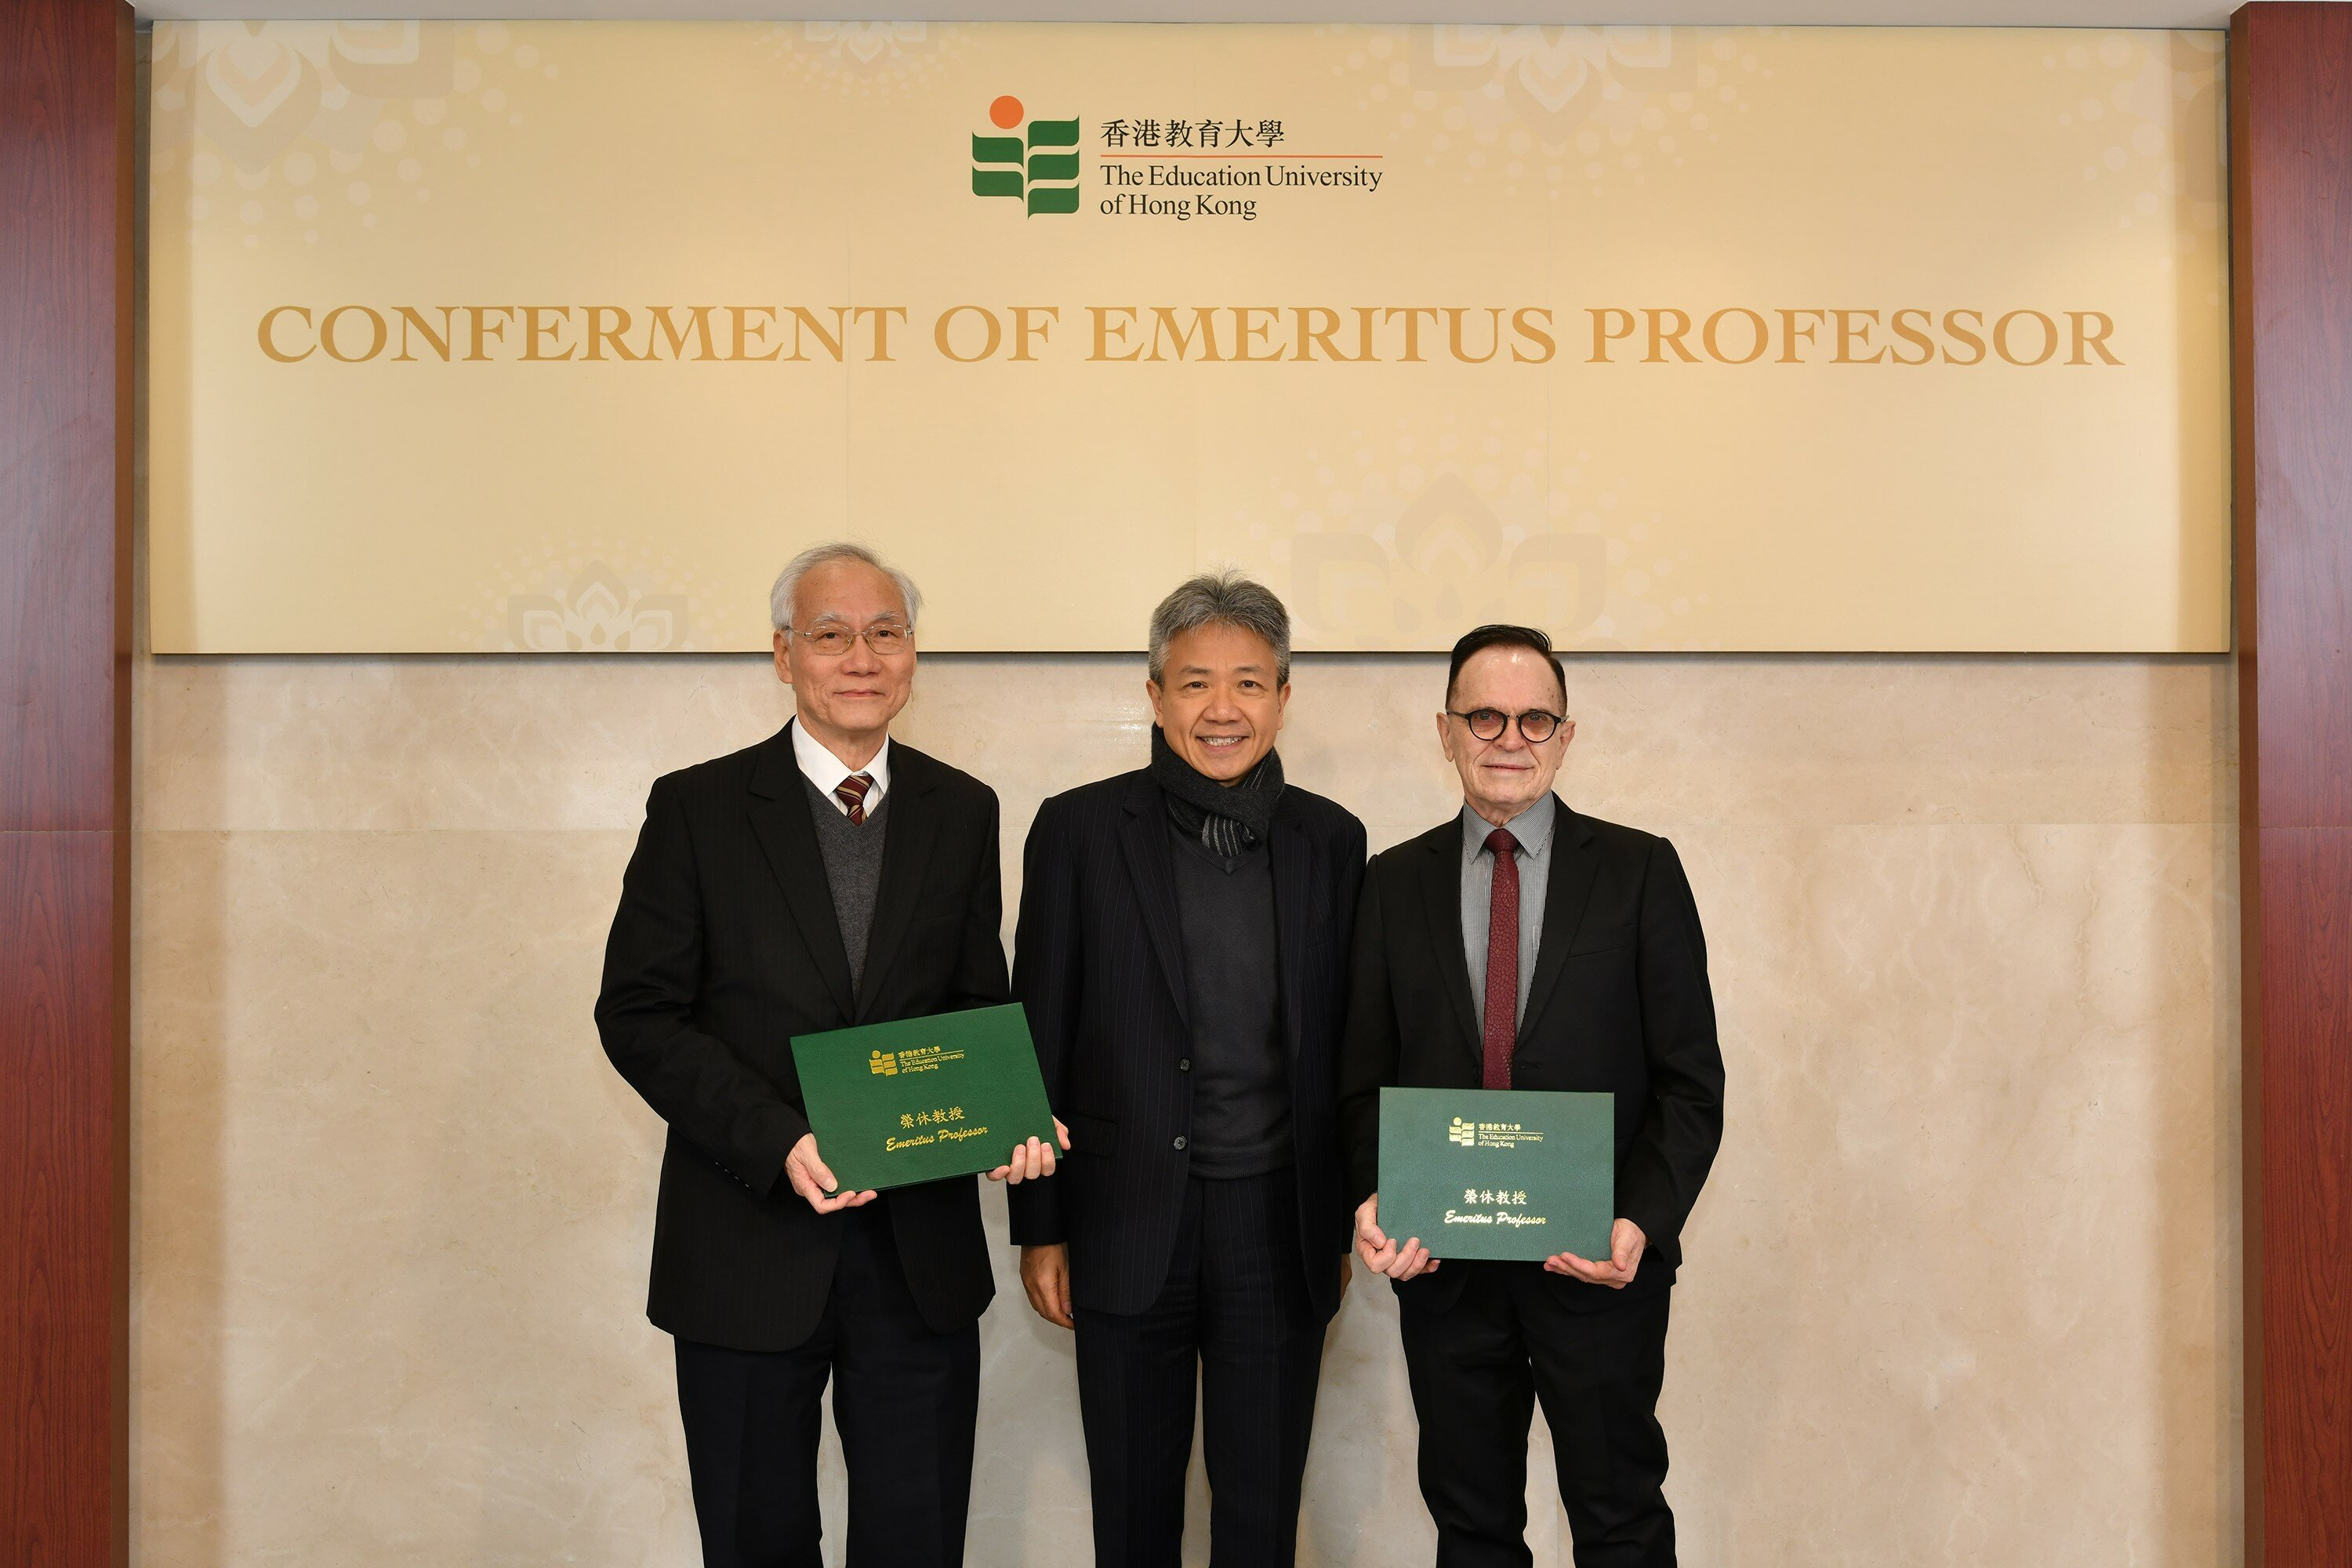 EdUHK emeritus professors and President Stephen Cheung